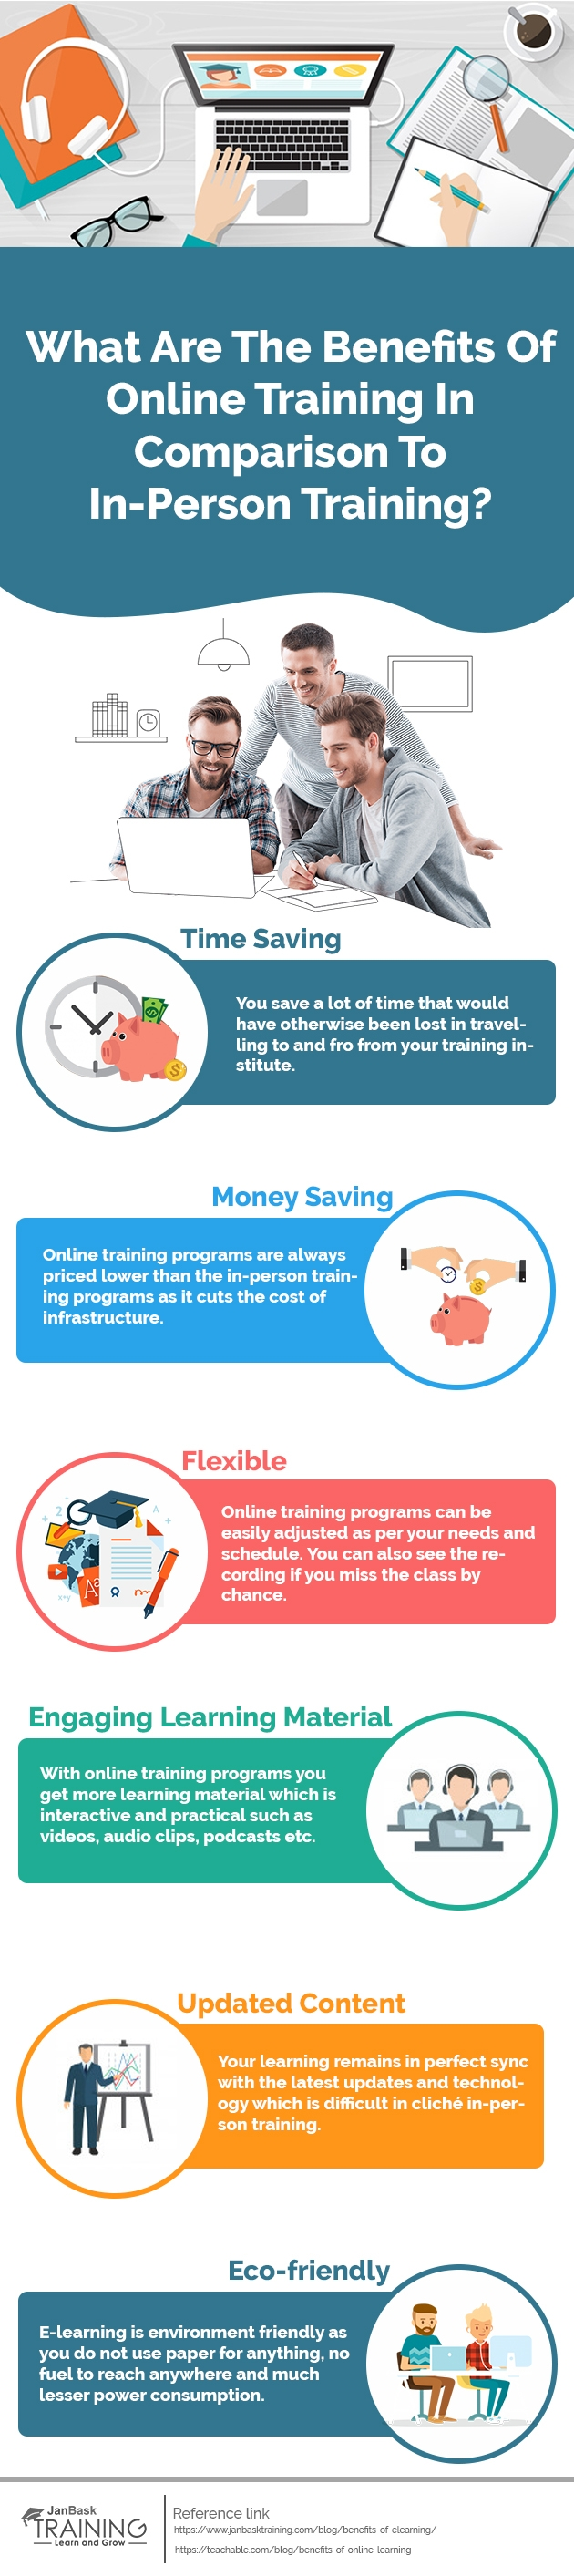 How Online Training is Better Than In-Person Training? - infographic